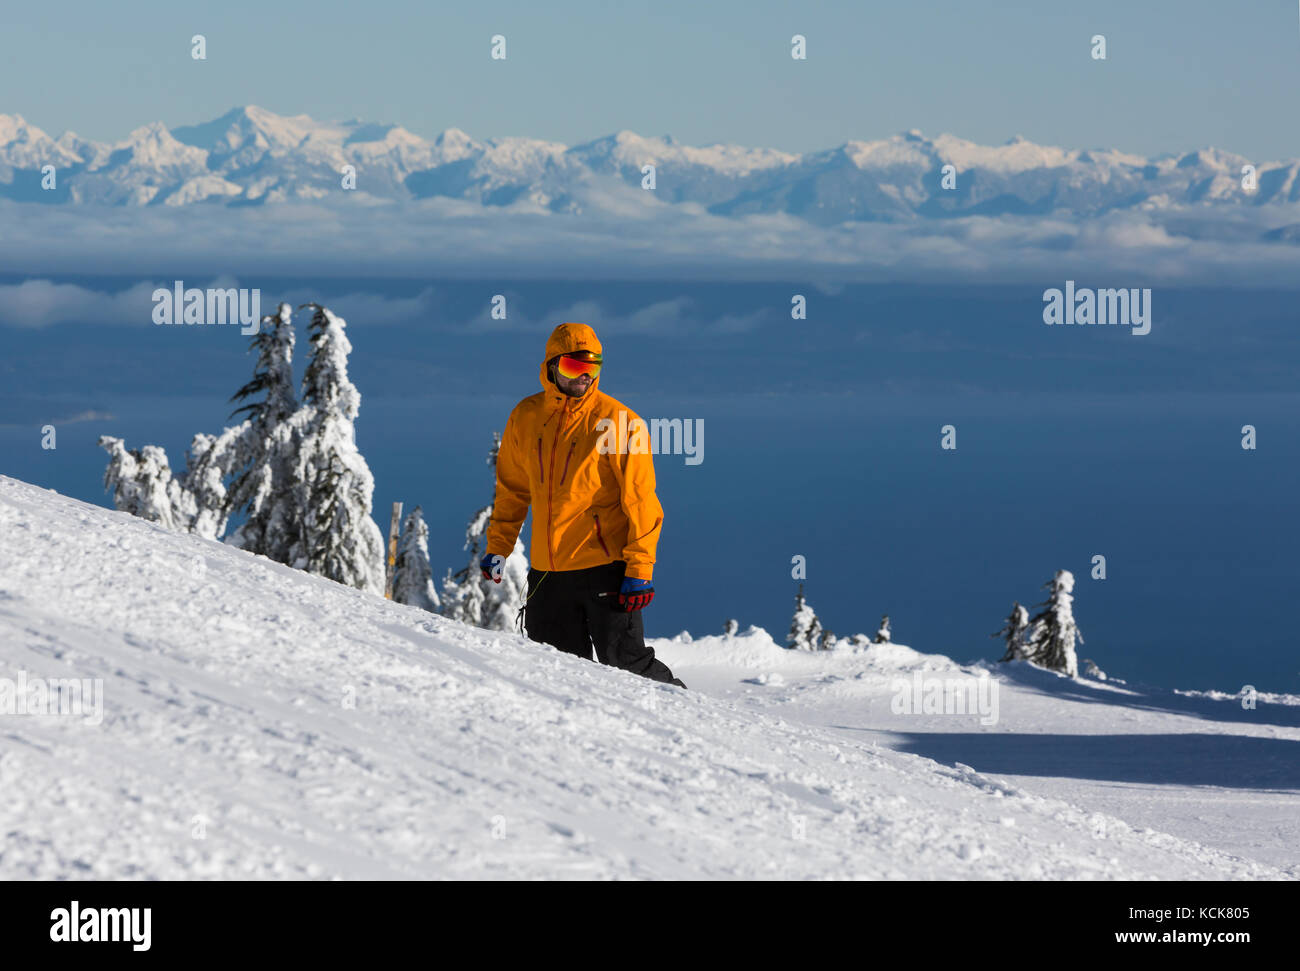 A colorful snowboarder on a ski run at Mt. Washington contrasts with a snowcapped Coast Range mountain scenic, Mt. - Stock Image